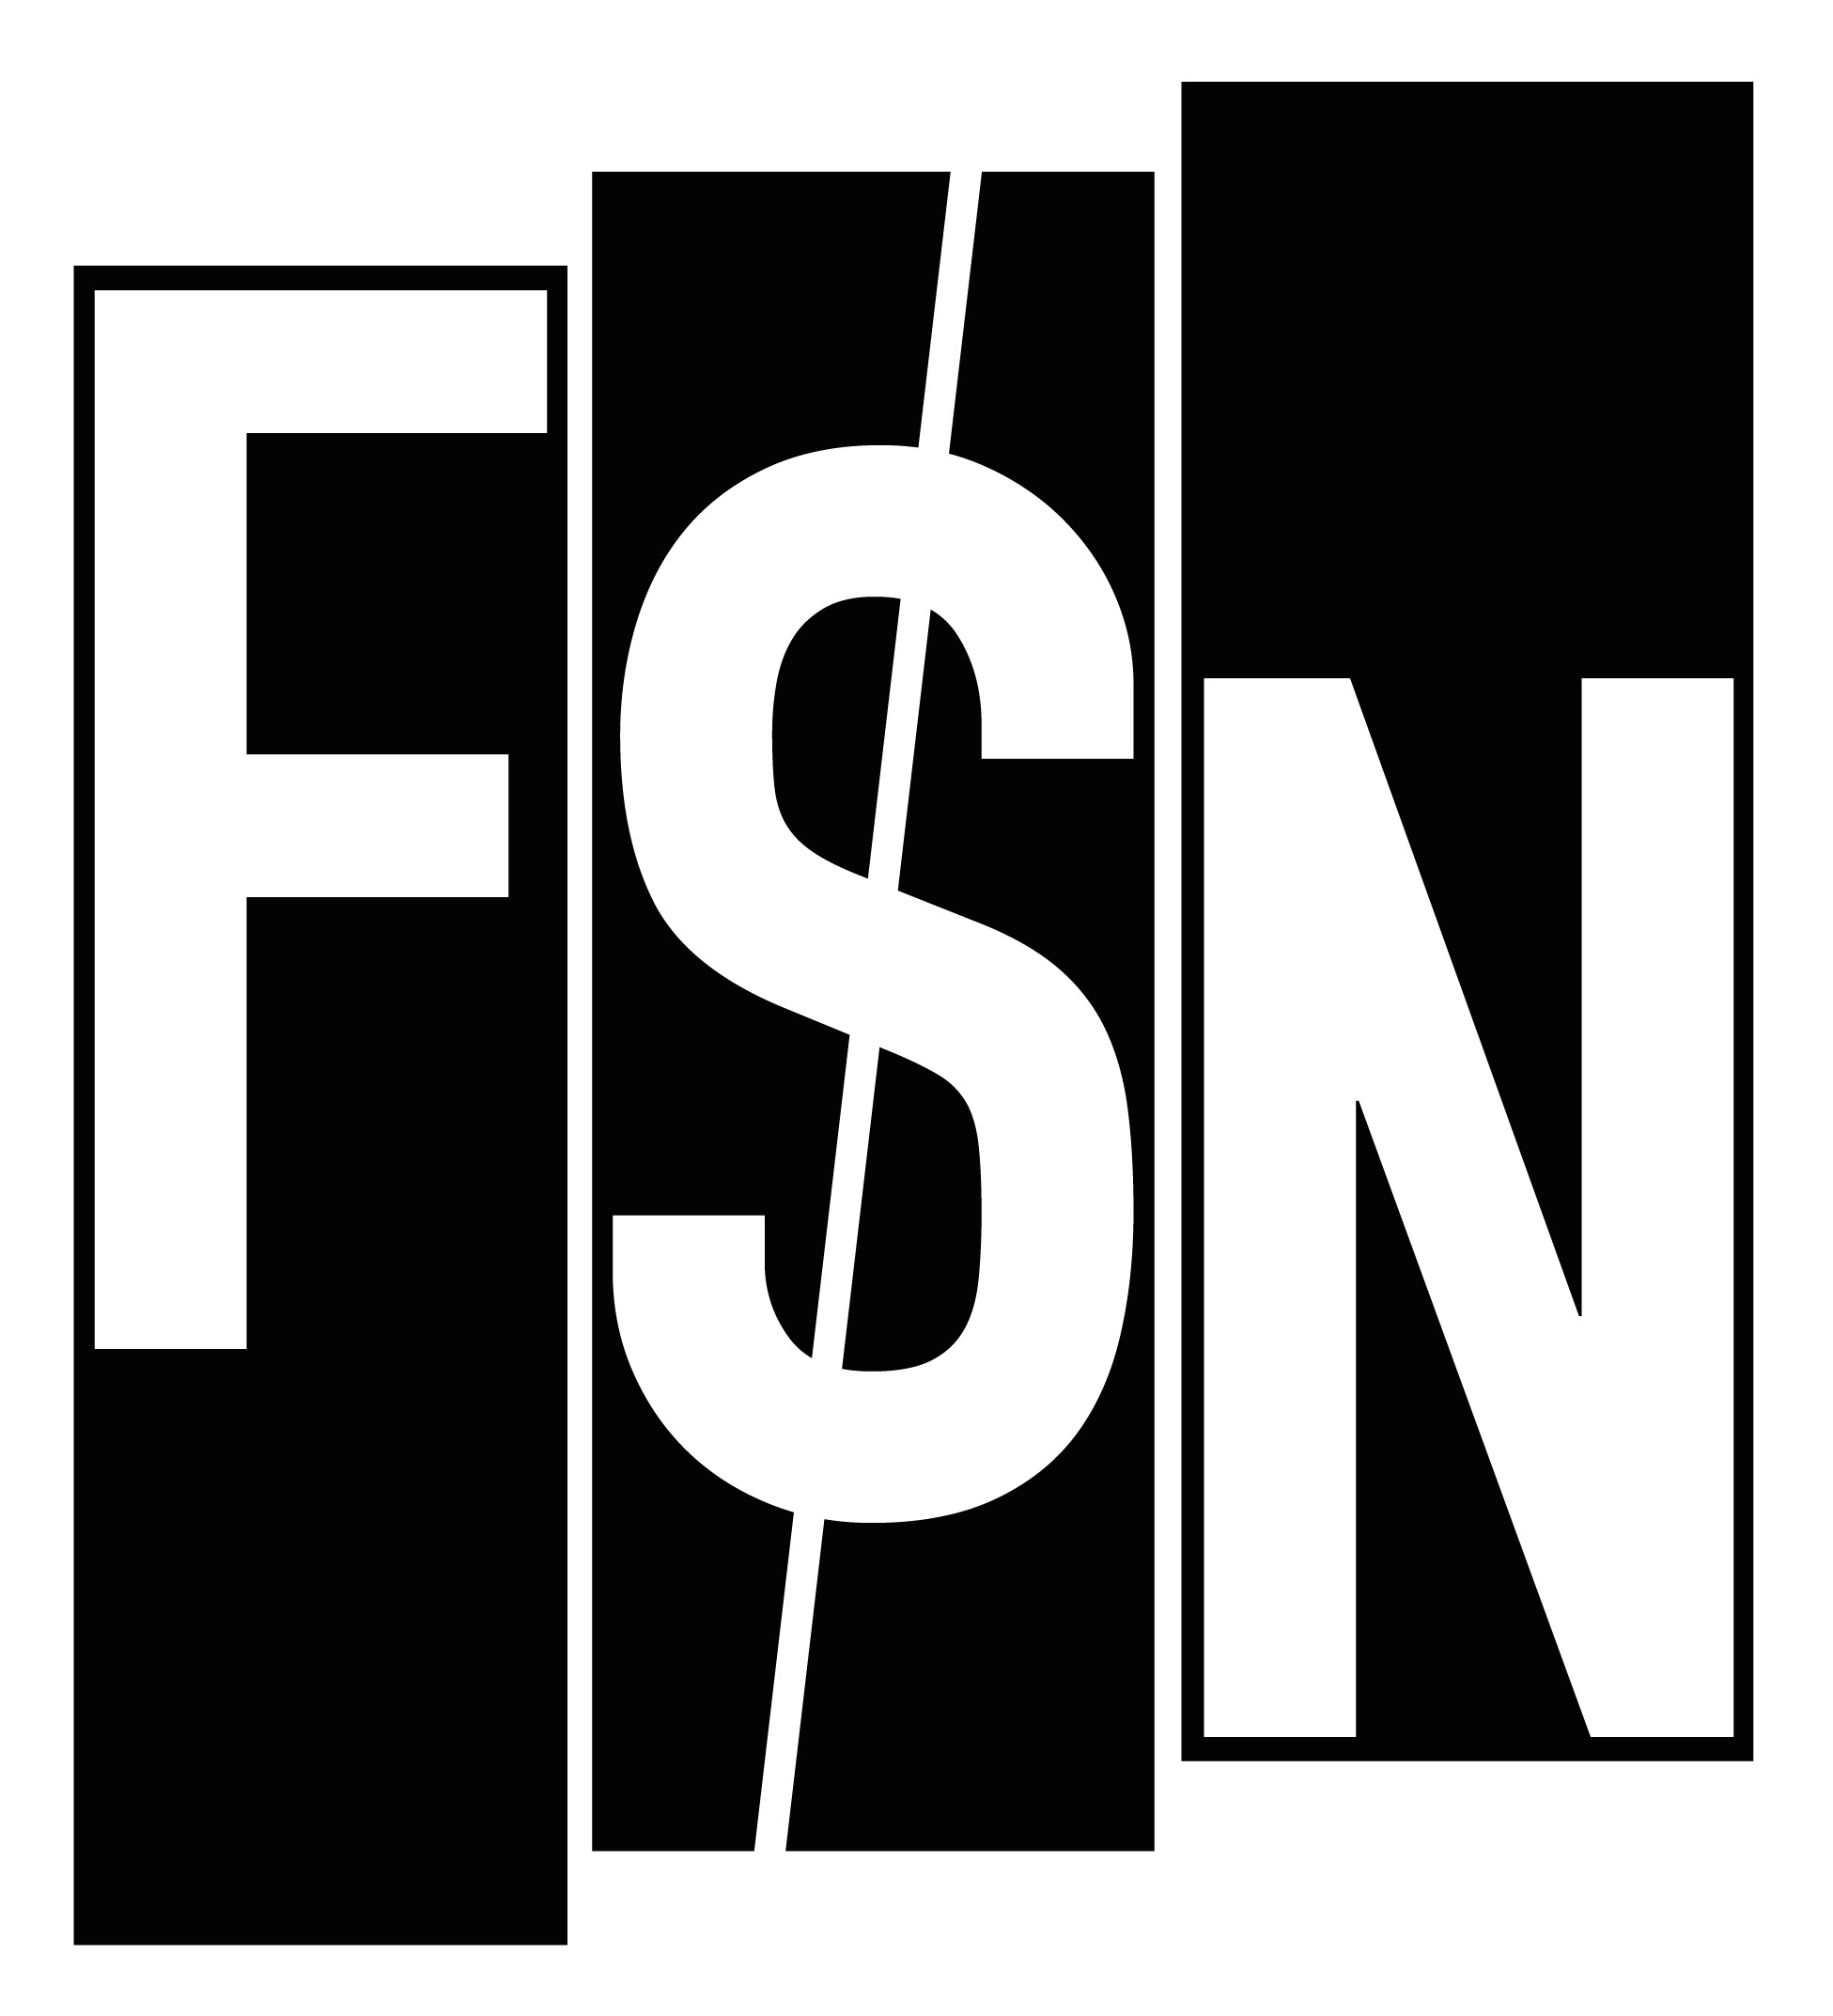 FSN 2019: Call for papers open